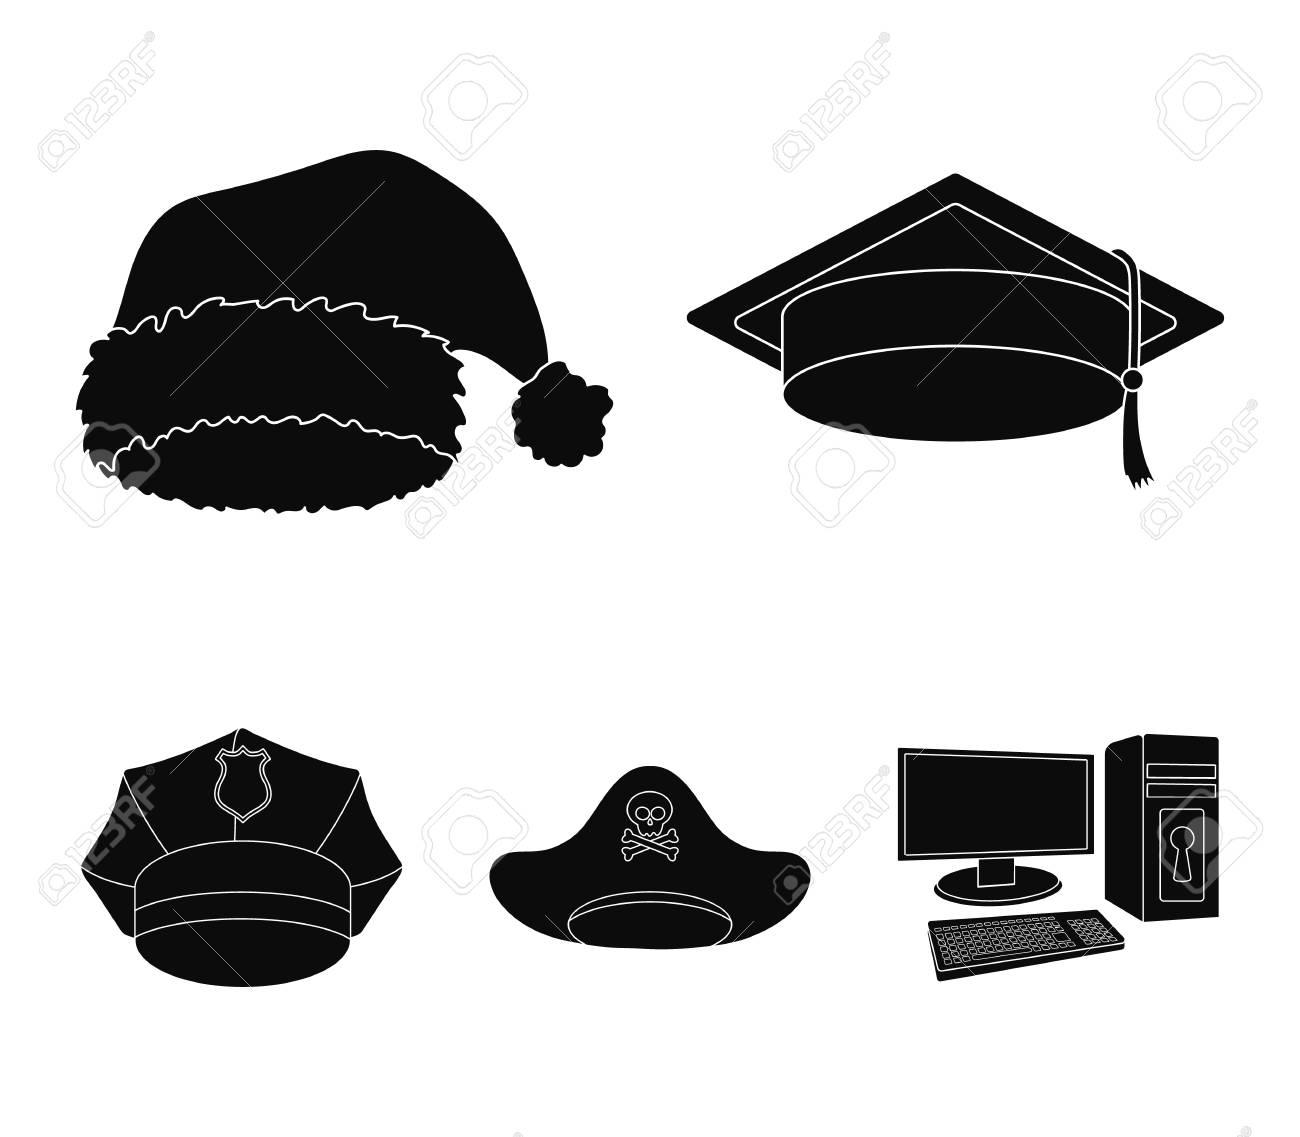 d6b1f93a277 Graduate, santa, police, pirate. Hats set collection icons in..